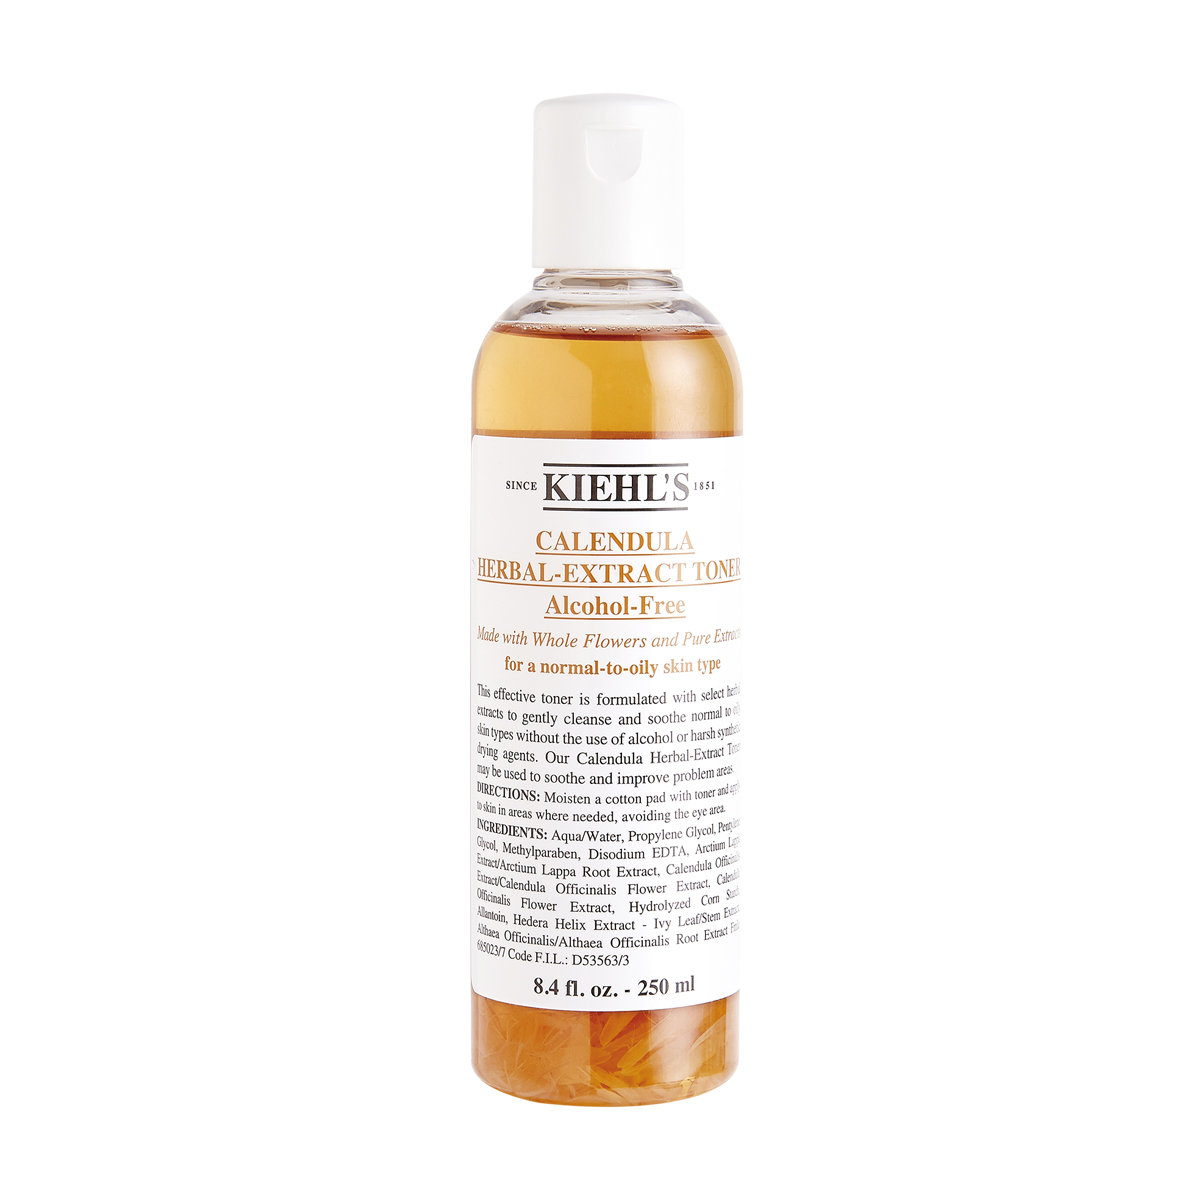 Kiehls - Calendula Herbal Extract Alcohol-Free Toner - For Normal to Oily Skin Types -250ml/8.4oz Dermalogica - MediBac Clearing Breakout Control - 30ml/1oz